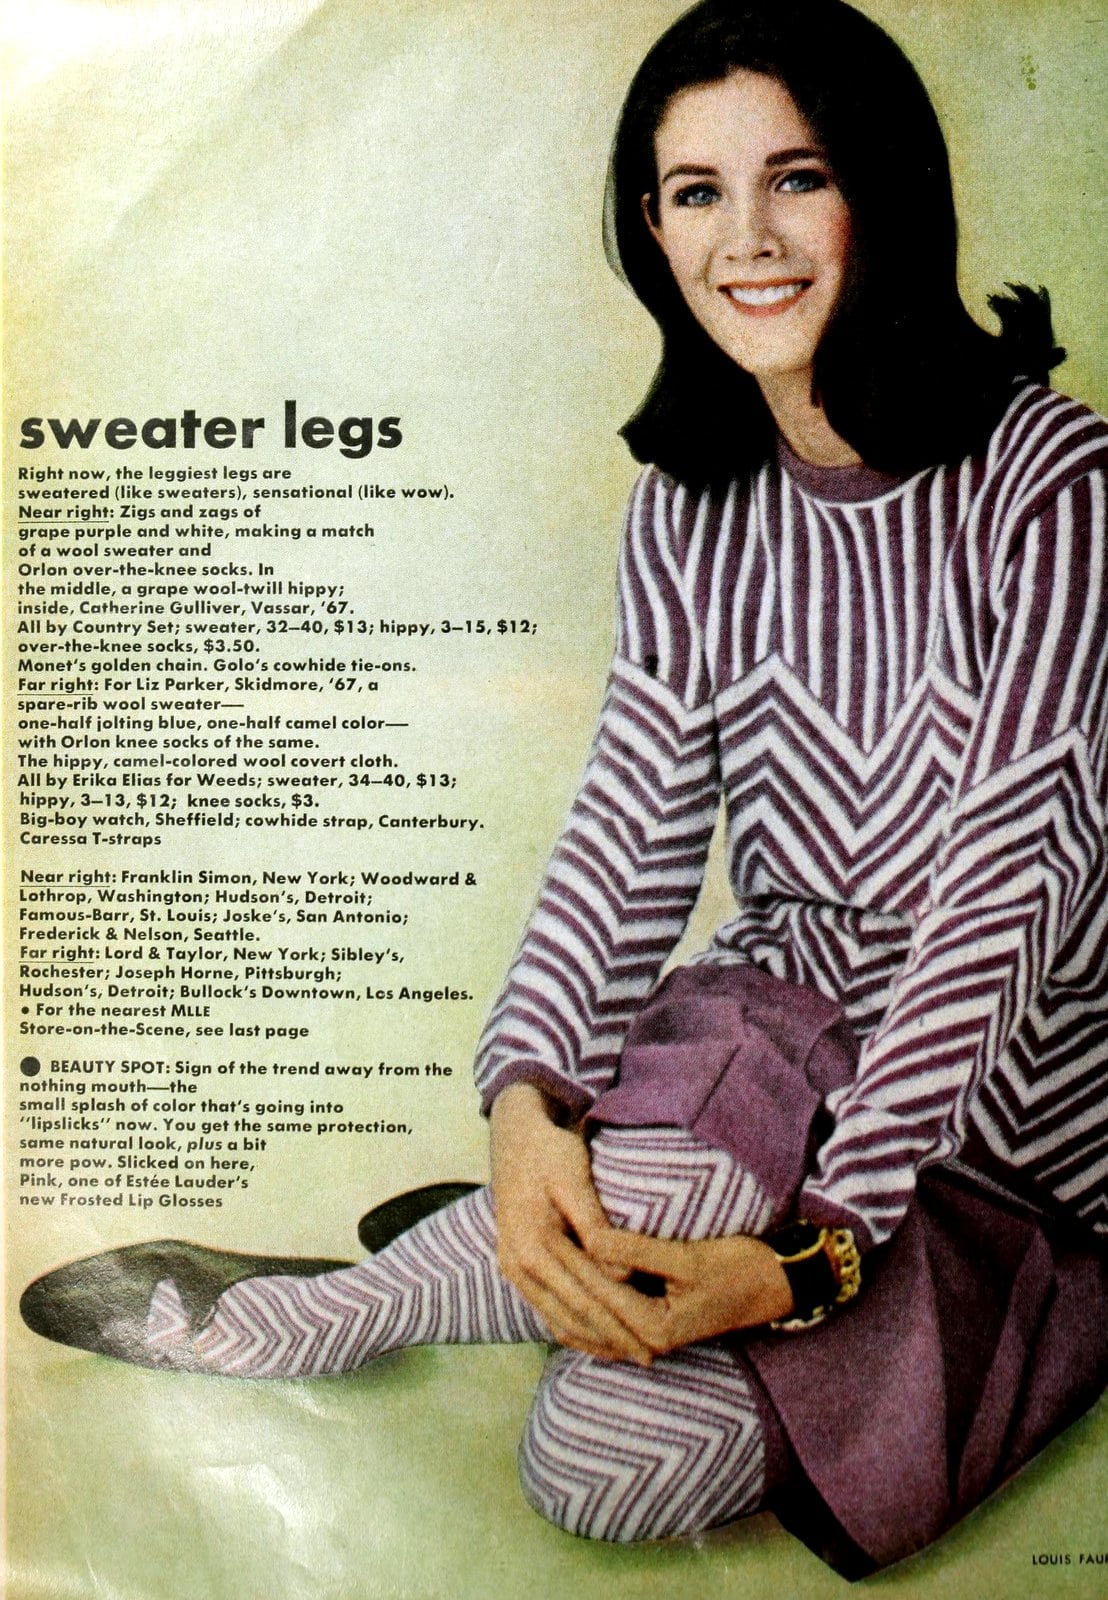 Purple and white sweater with coordinating skirt and leggings (1965)